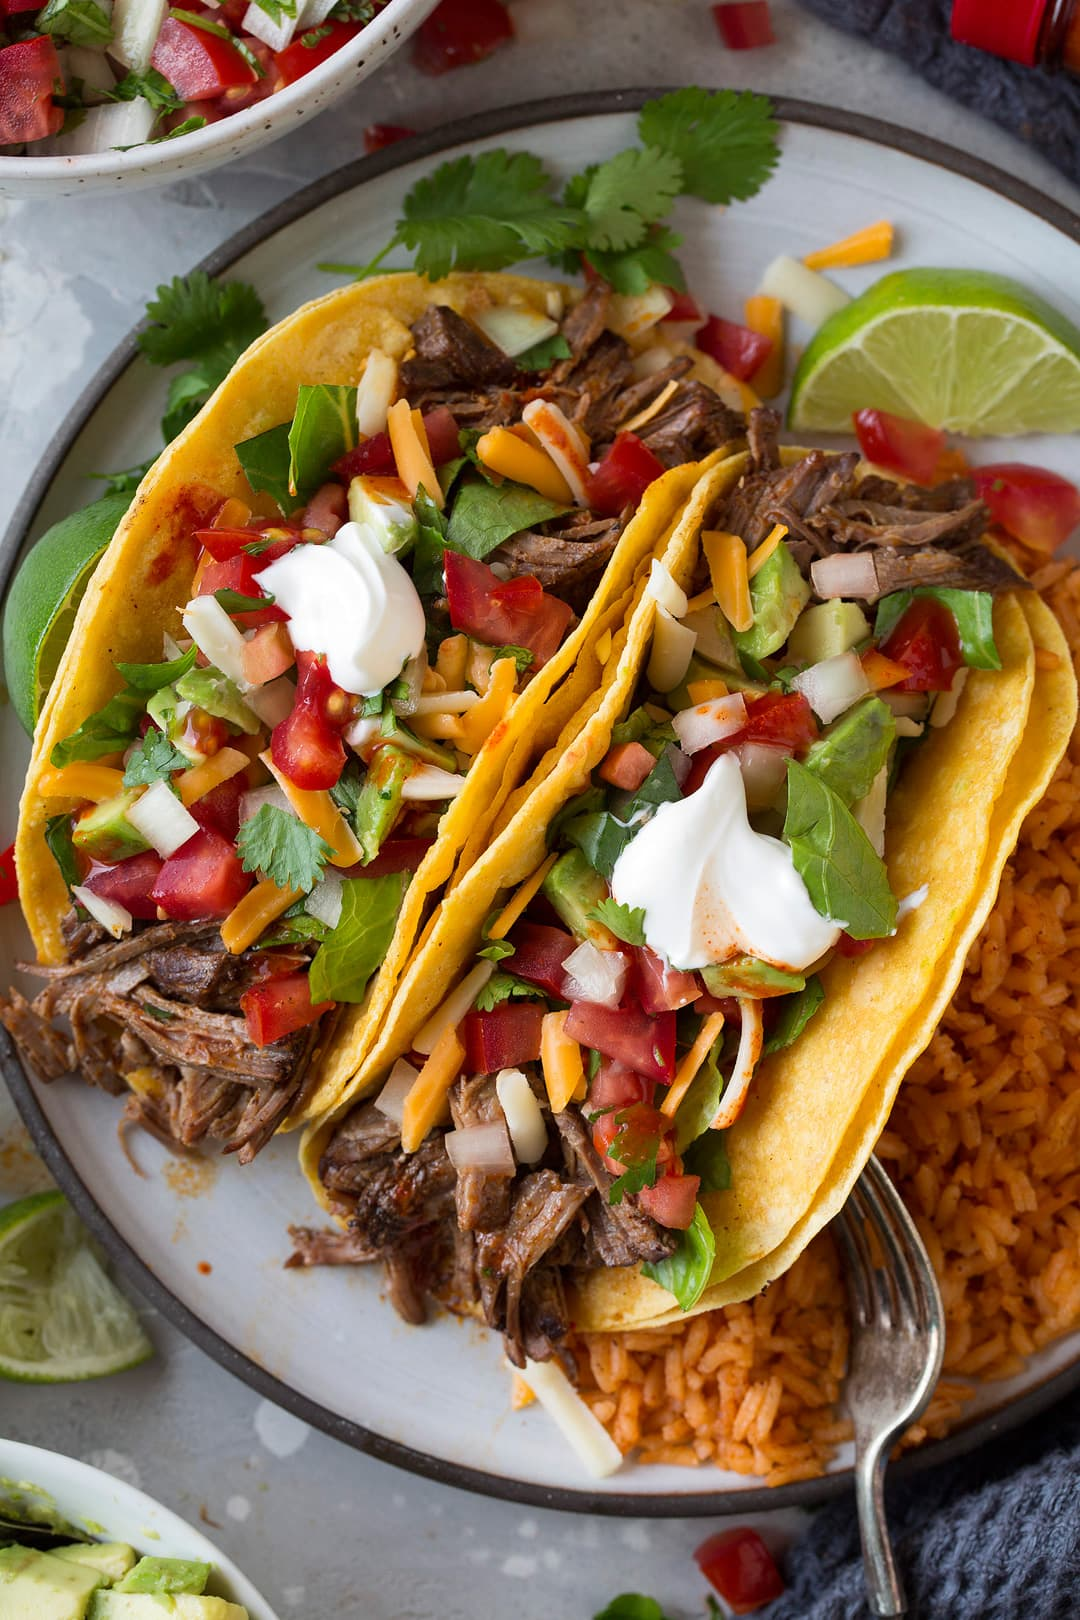 How to make beef tacos in slow cooker